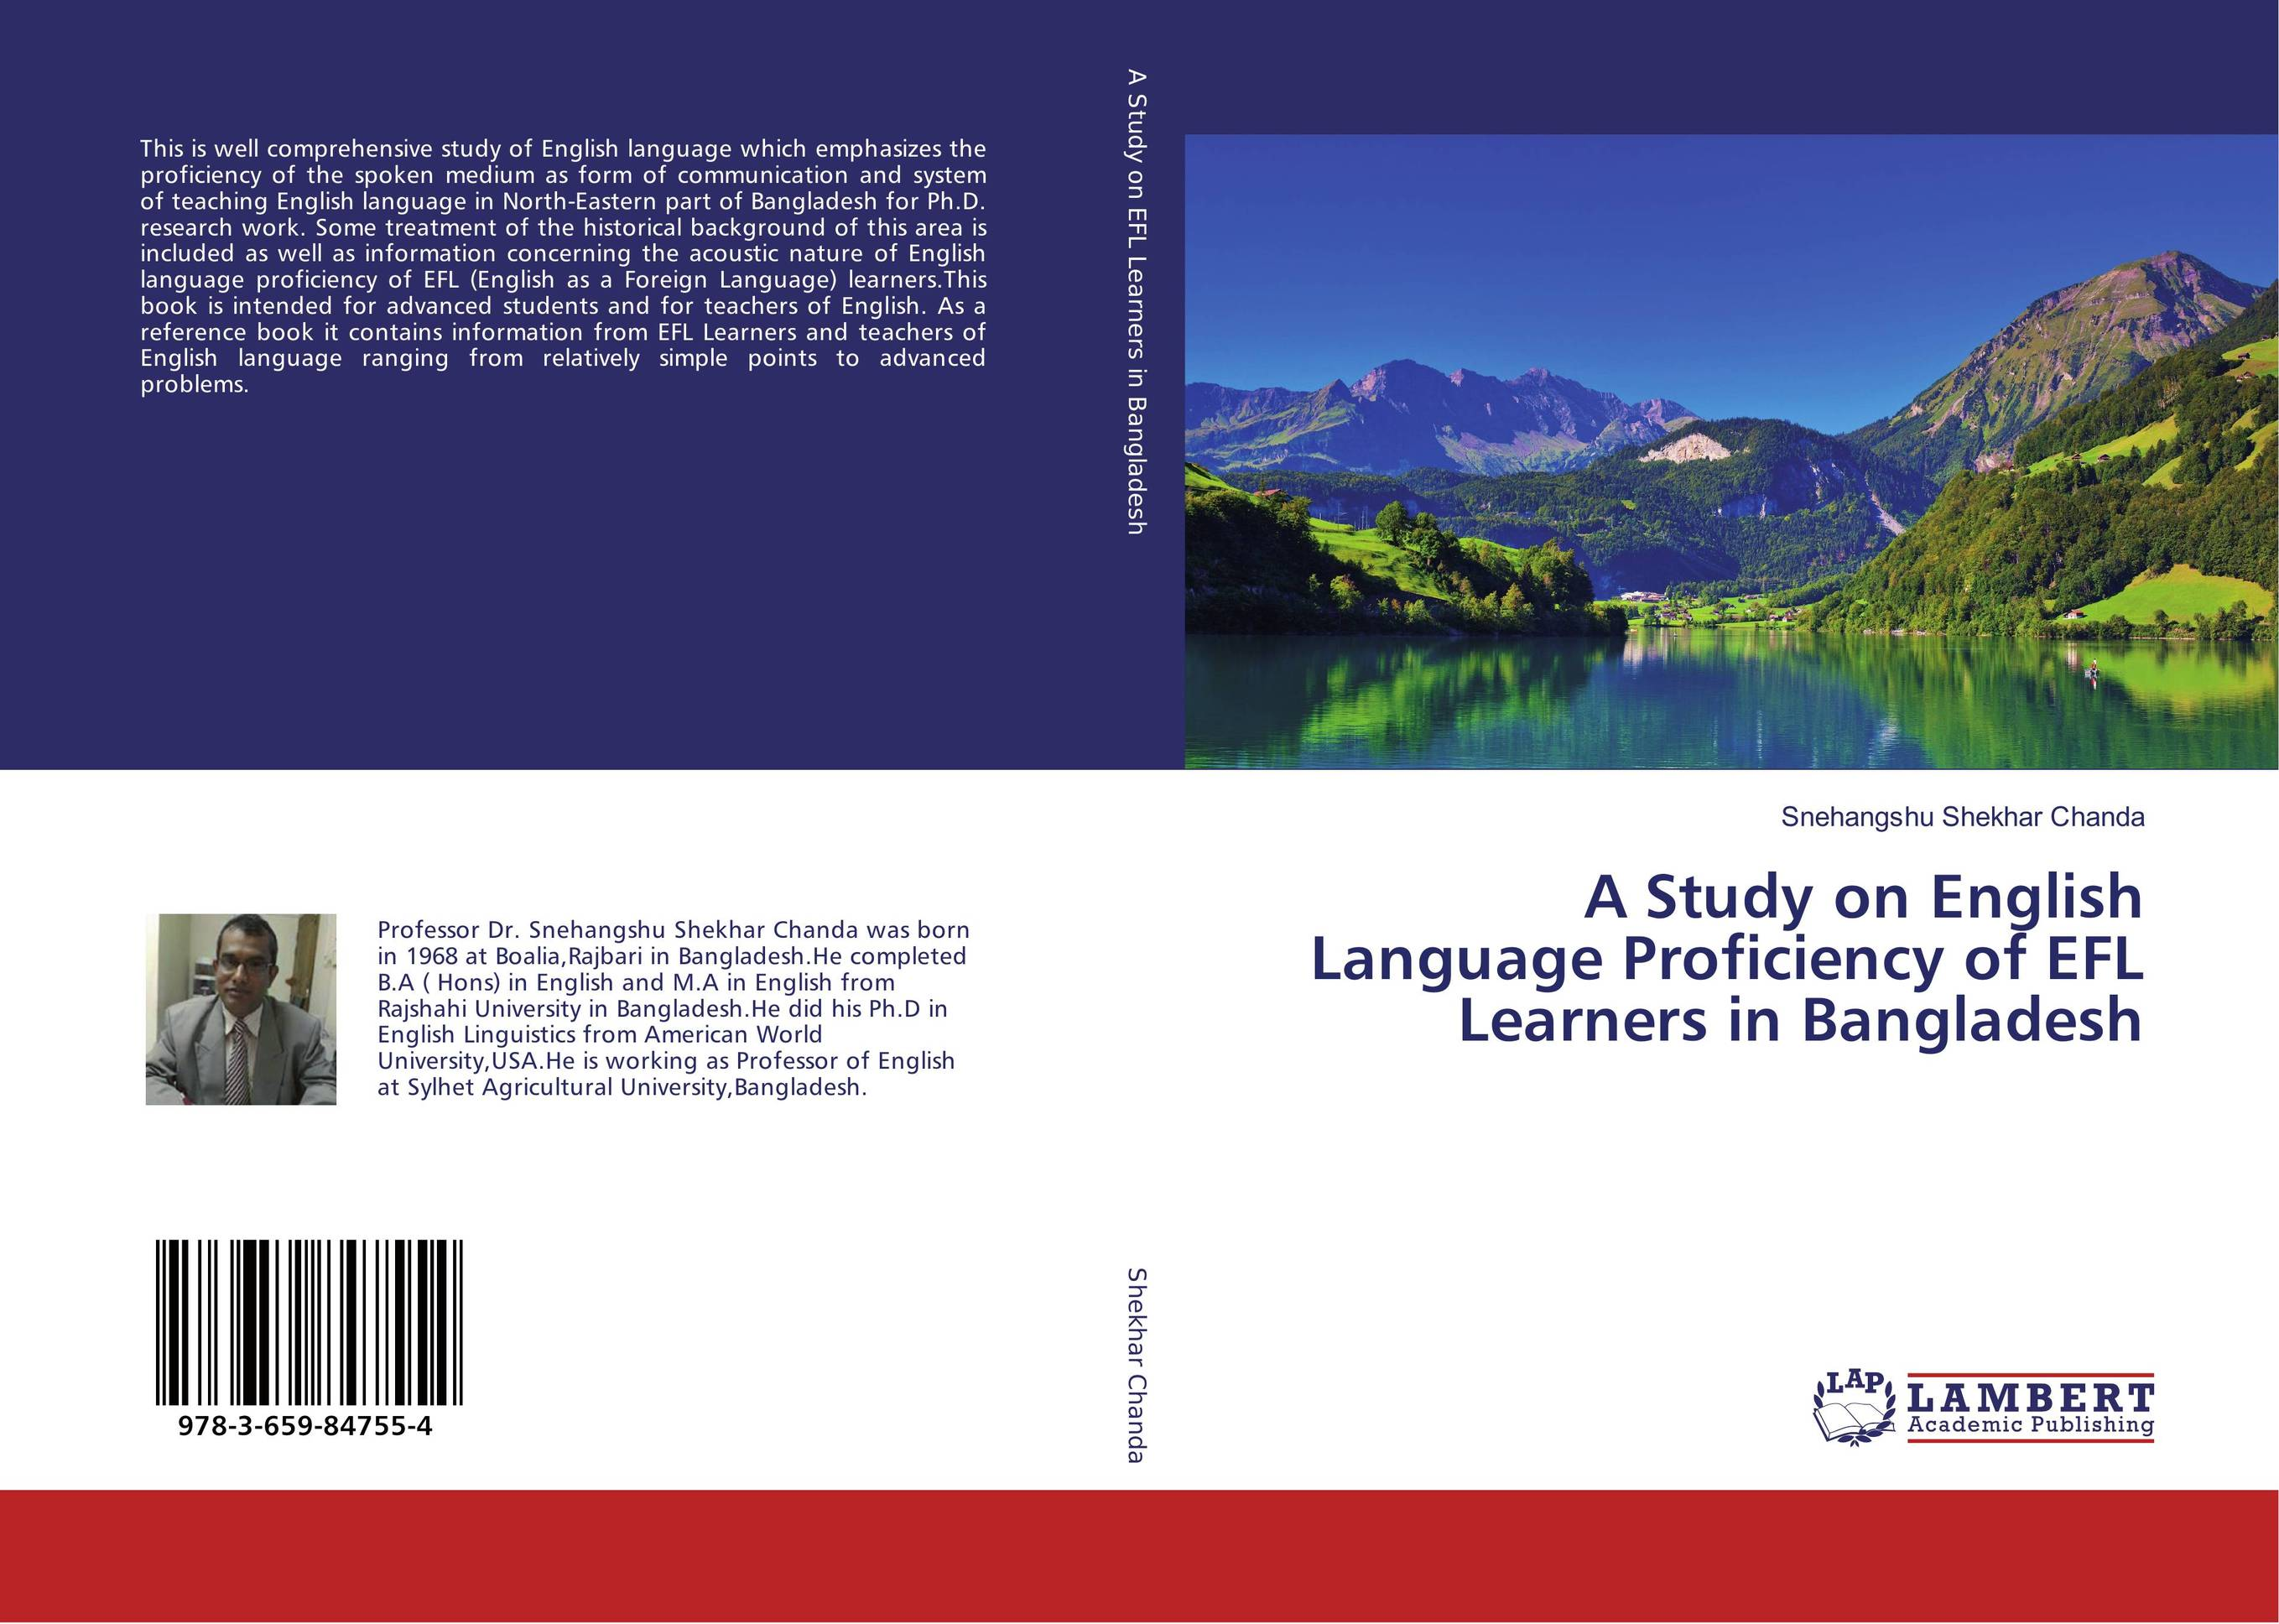 A Study on English Language Proficiency of EFL Learners in Bangladesh the role of ict in the teaching of english as a foreign language efl